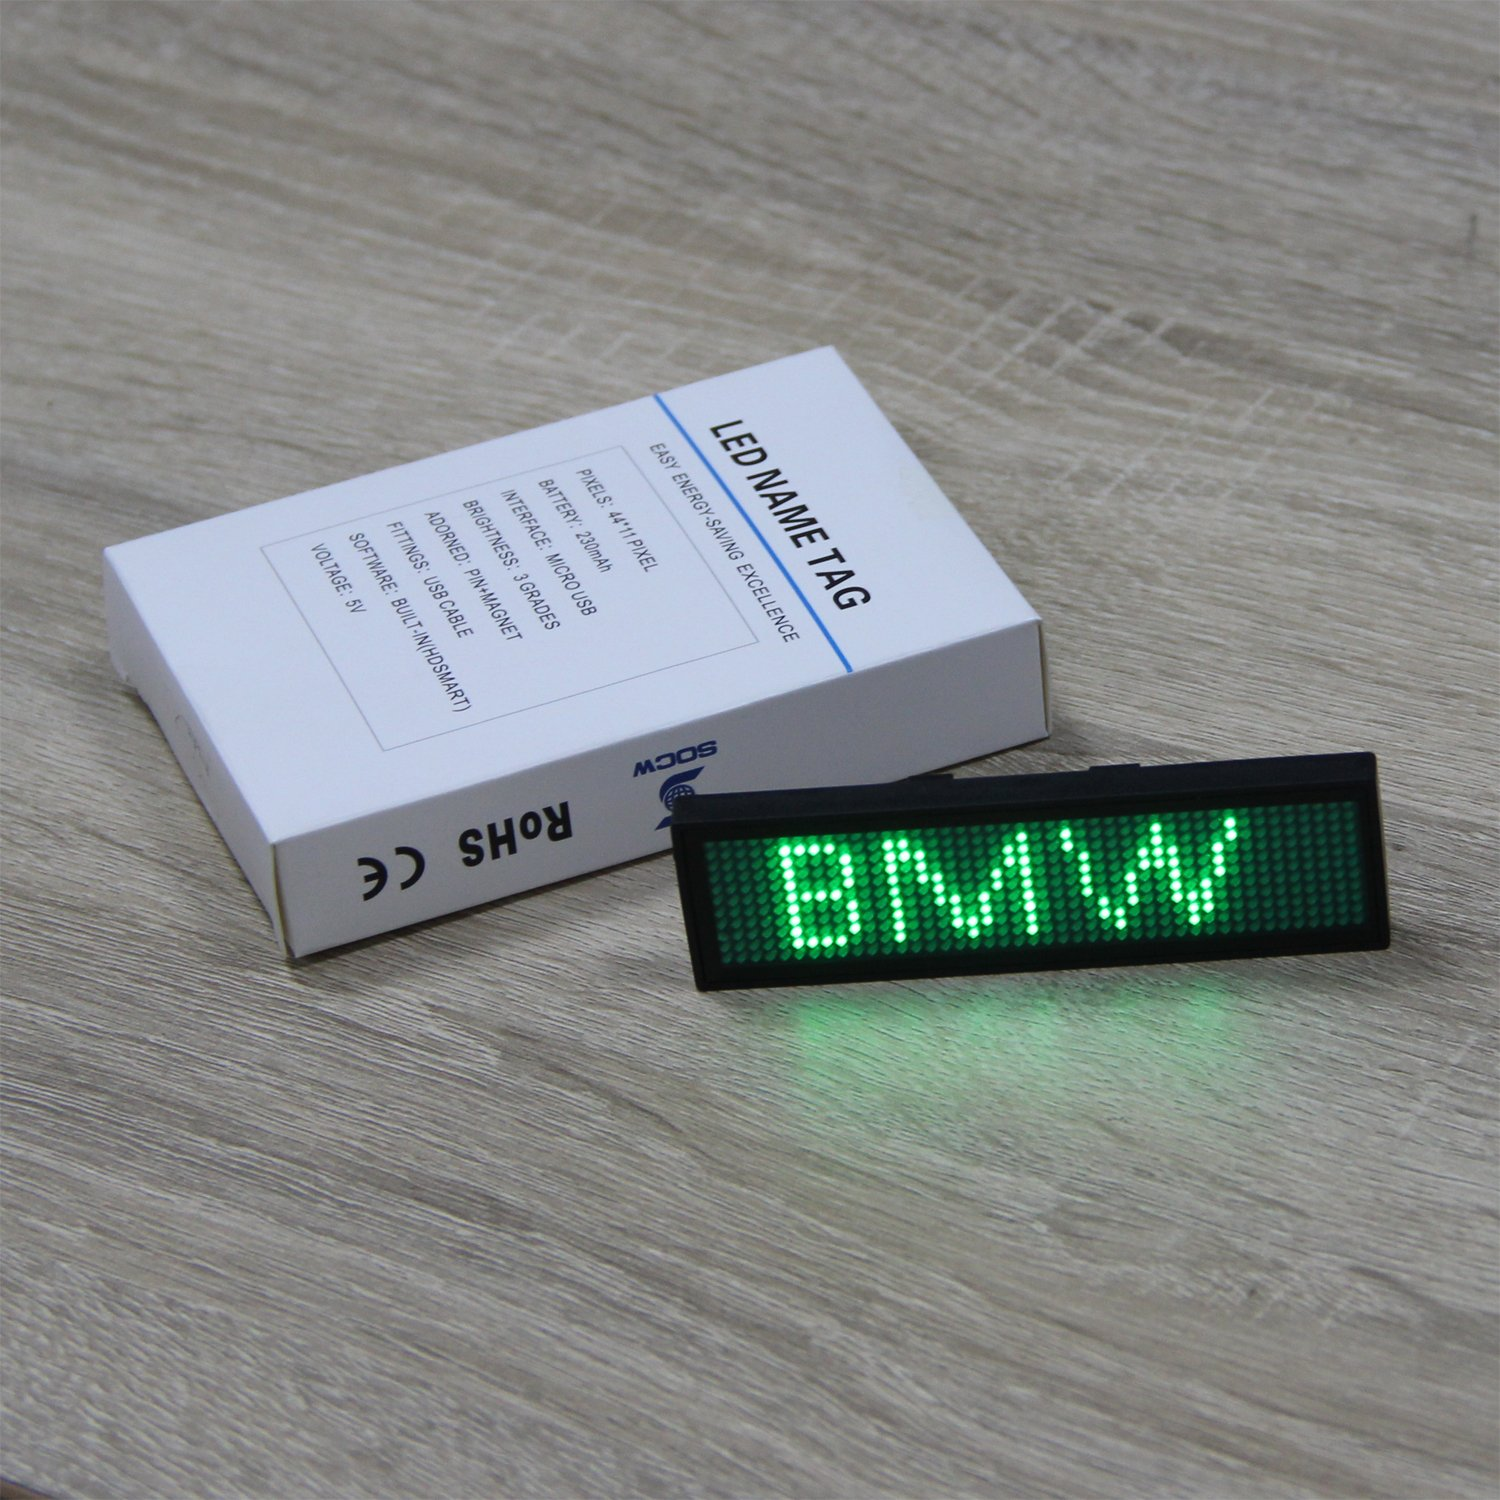 Green LED Name Badge,SOCW Reuseable Price Tag Rechargeable LED Business Card Screen with 44x11 Pixels USB Programming Digital Sign Temperature Display for Restaurant Shop Exhibition Nightclub Hotel